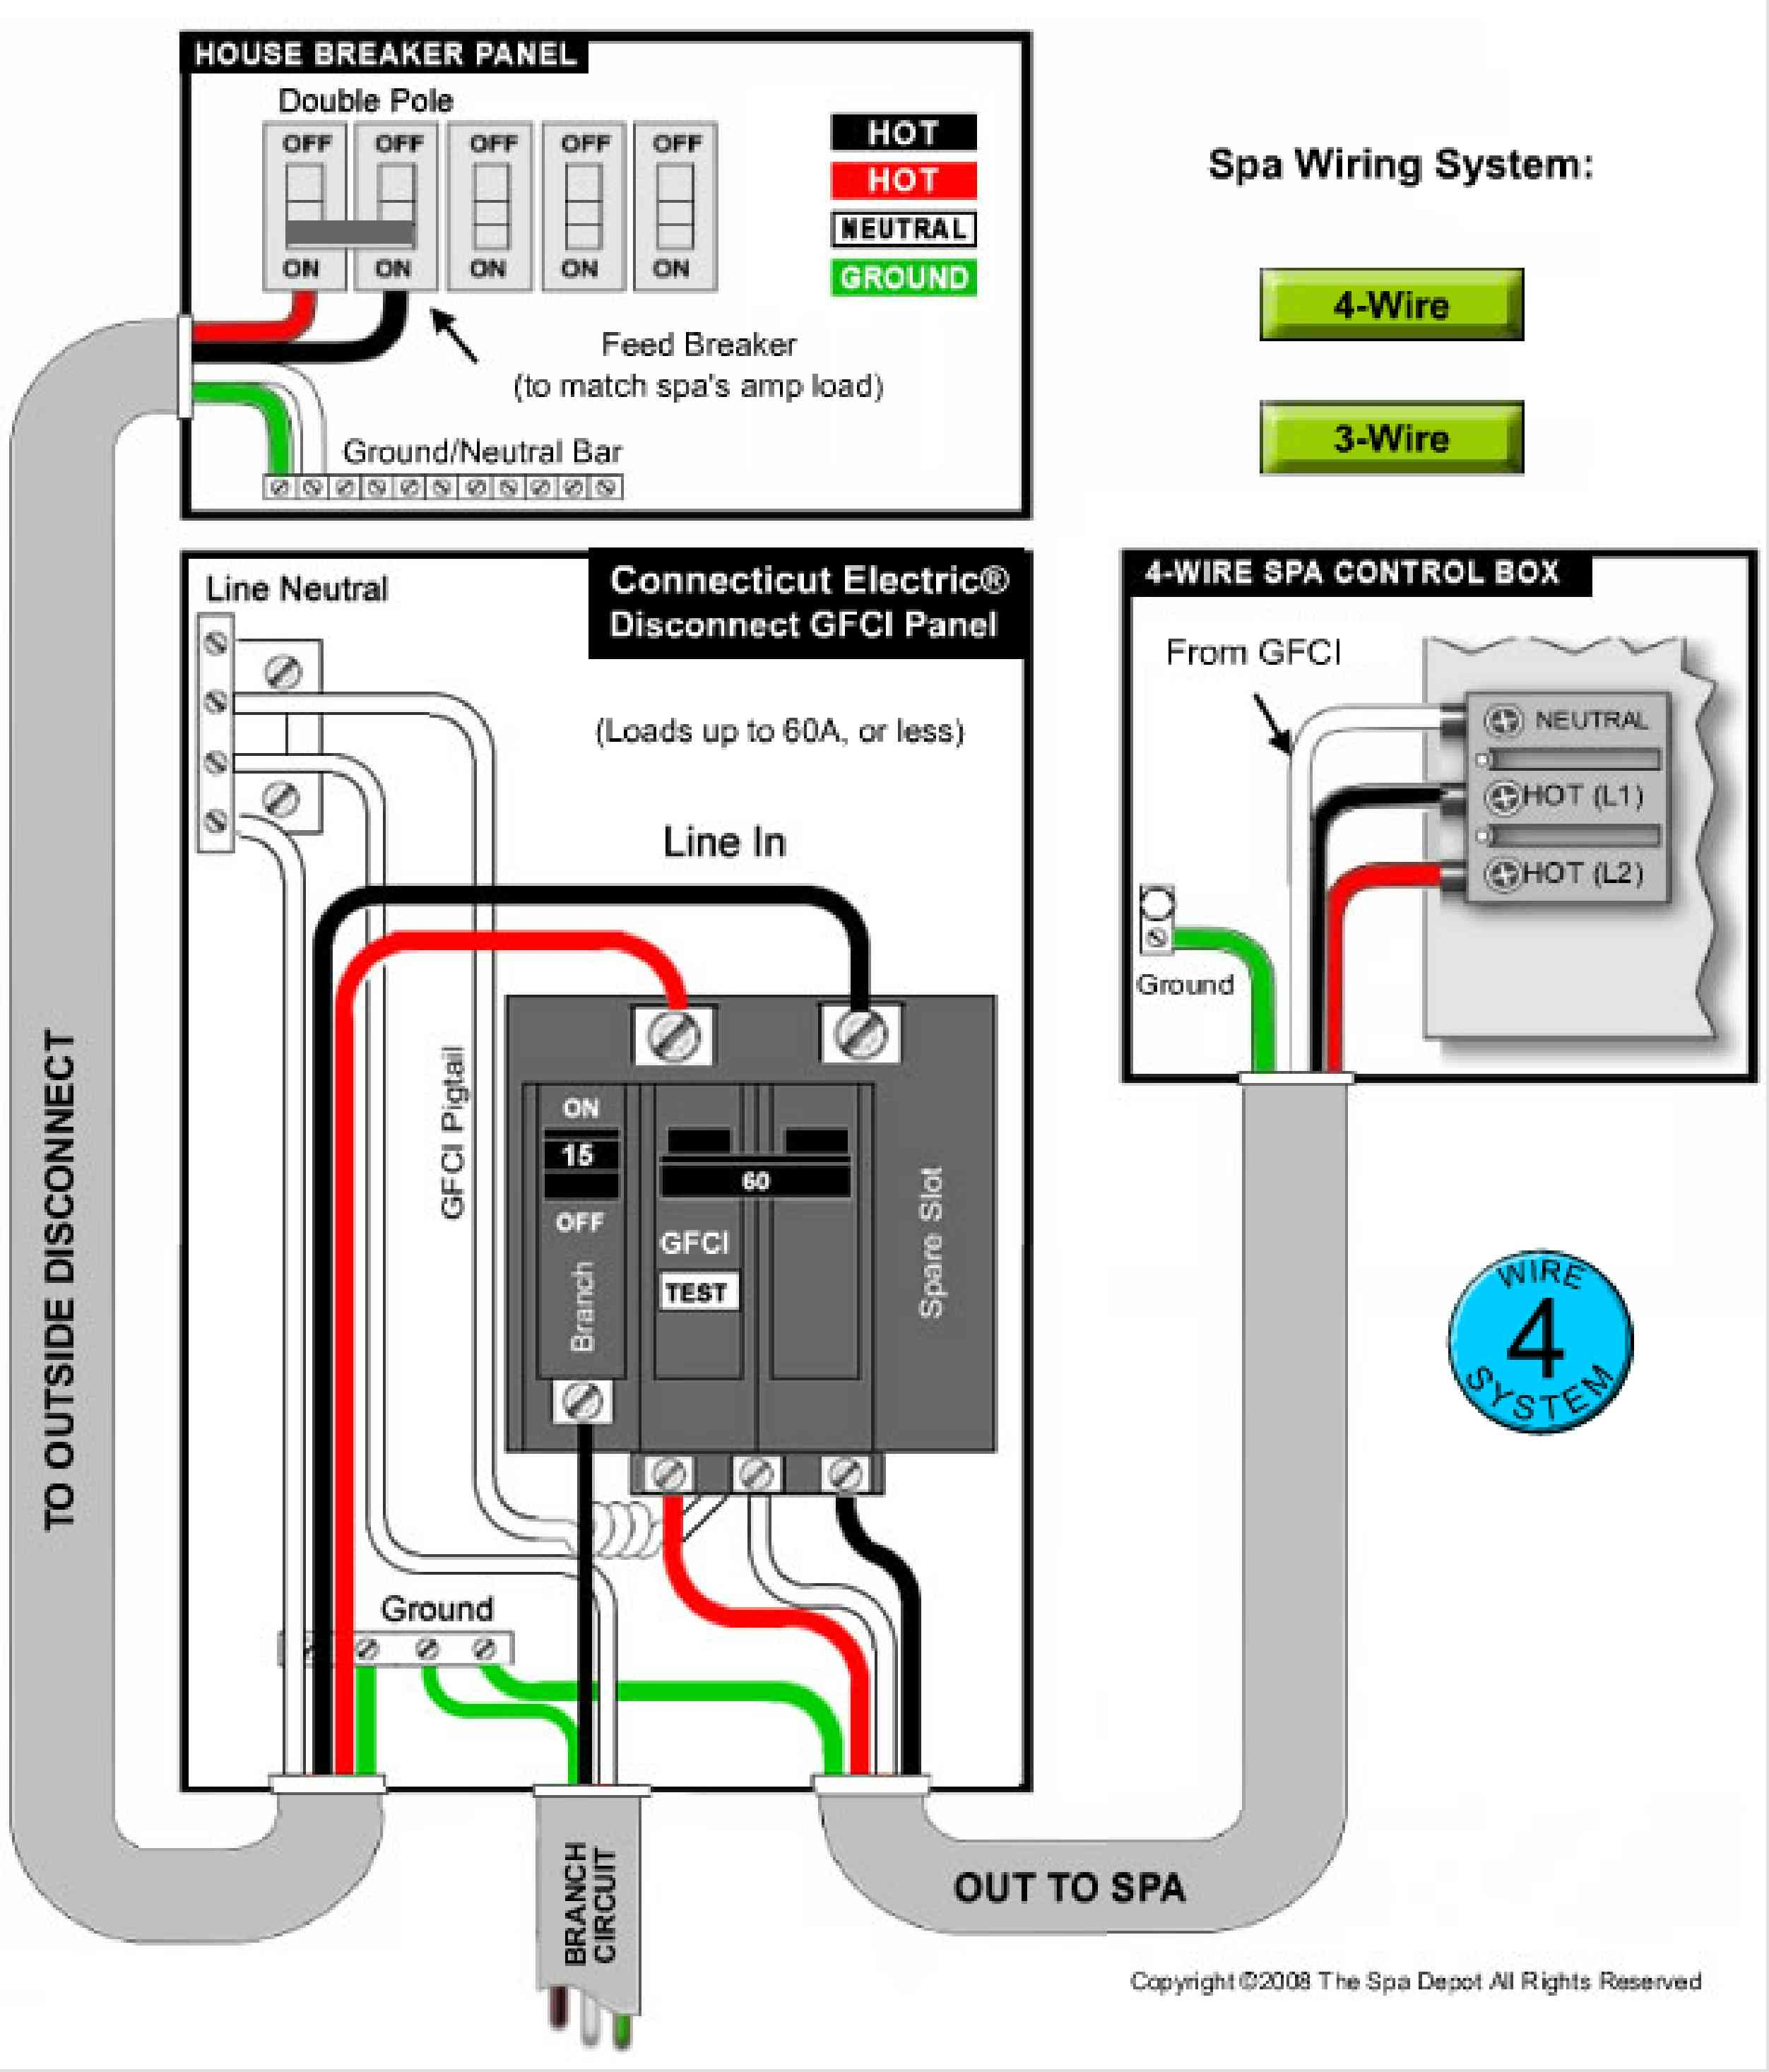 hot tub wiring diagram hot wiring diagrams online royal spa wiring diagram